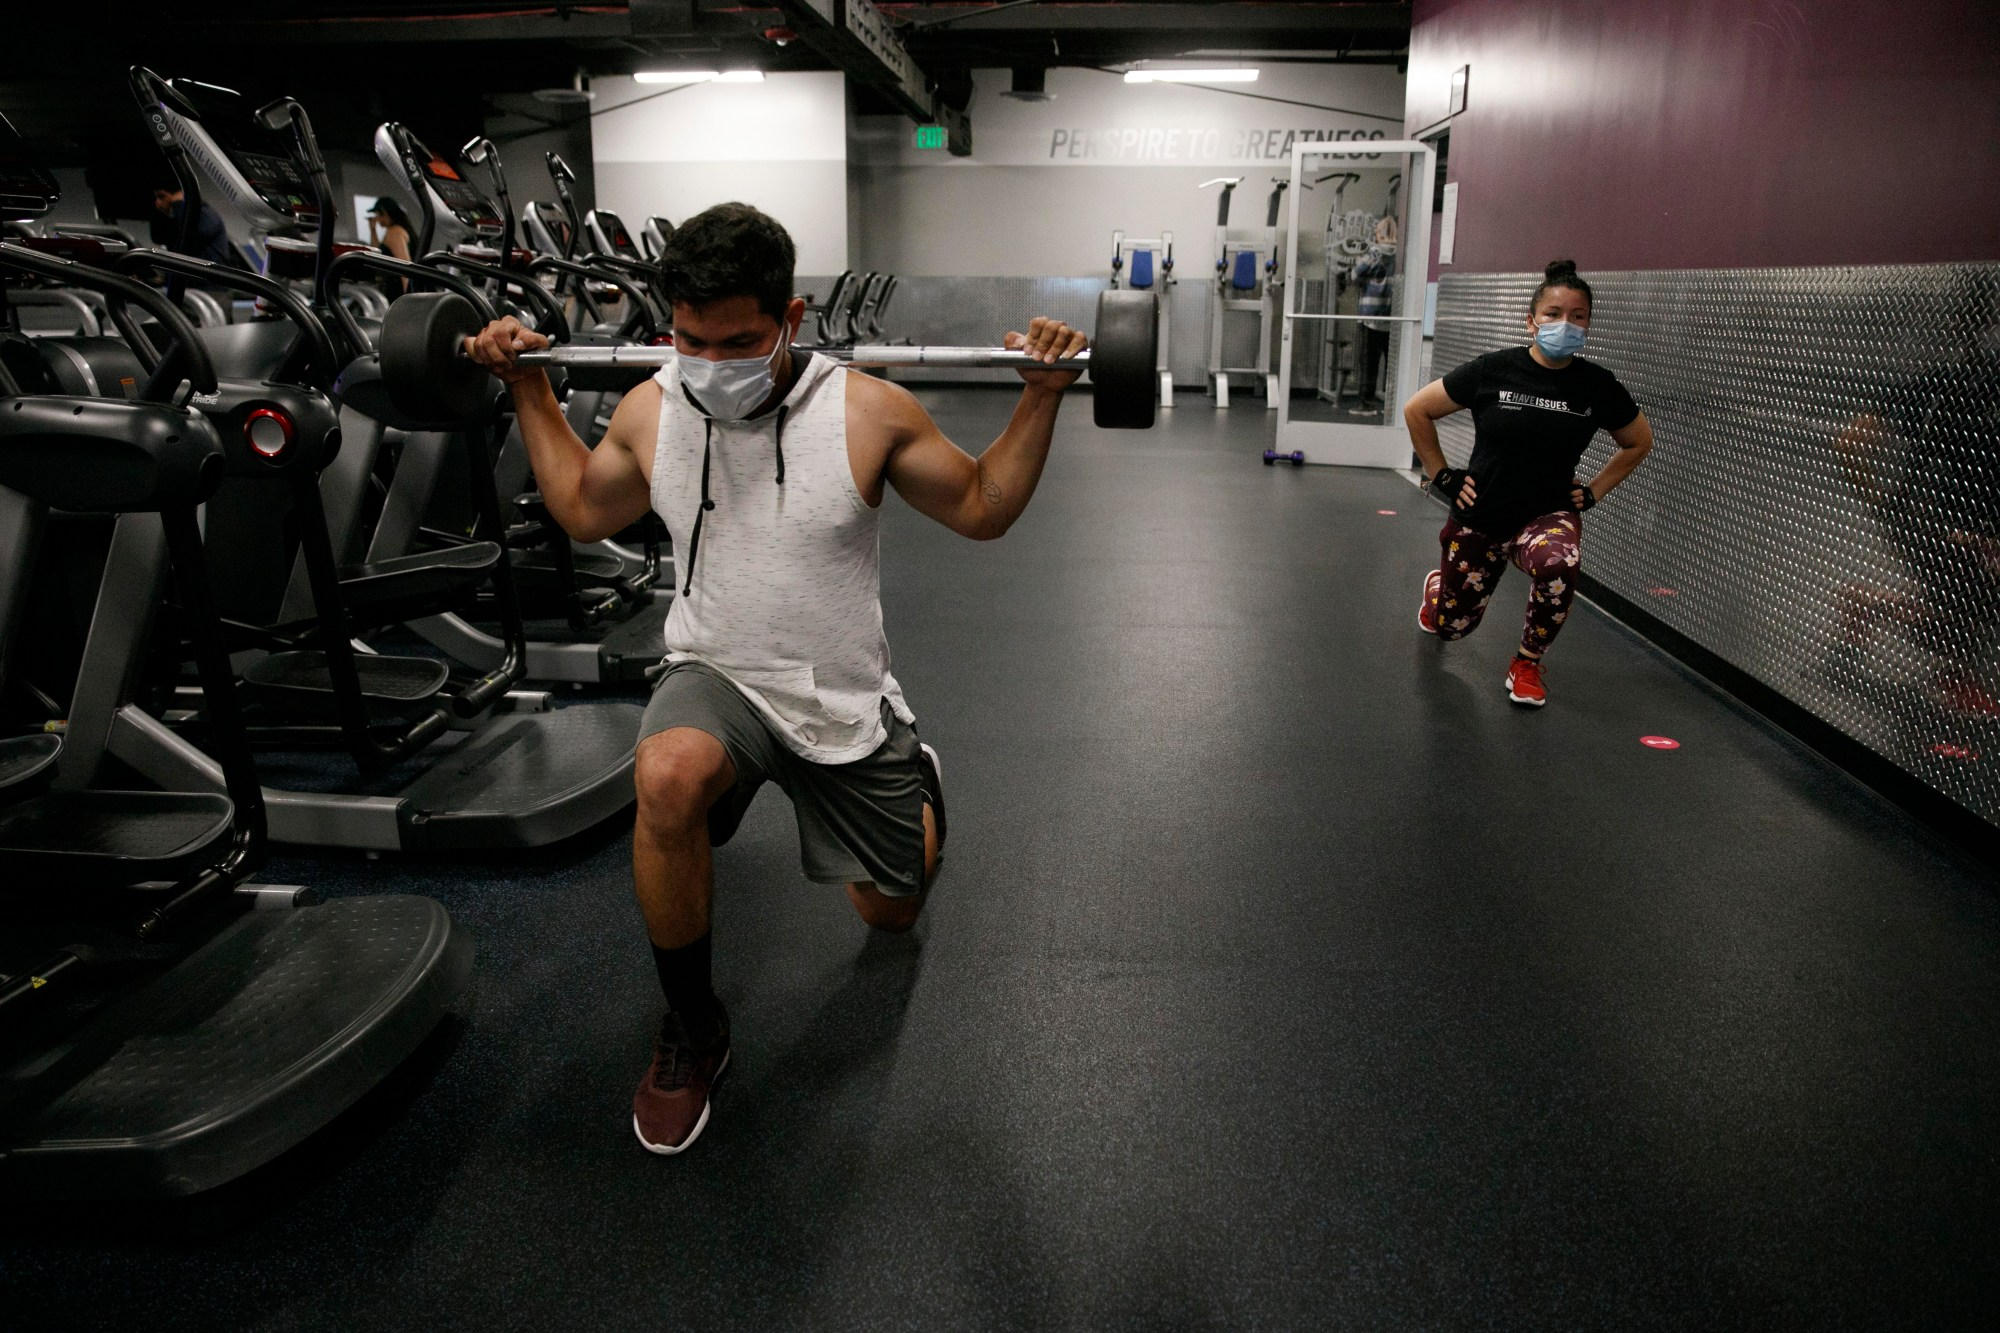 people wear masks while exercising at a gym in Los Angeles on June 26, 2020. (AP Photo/Jae C. Hong)